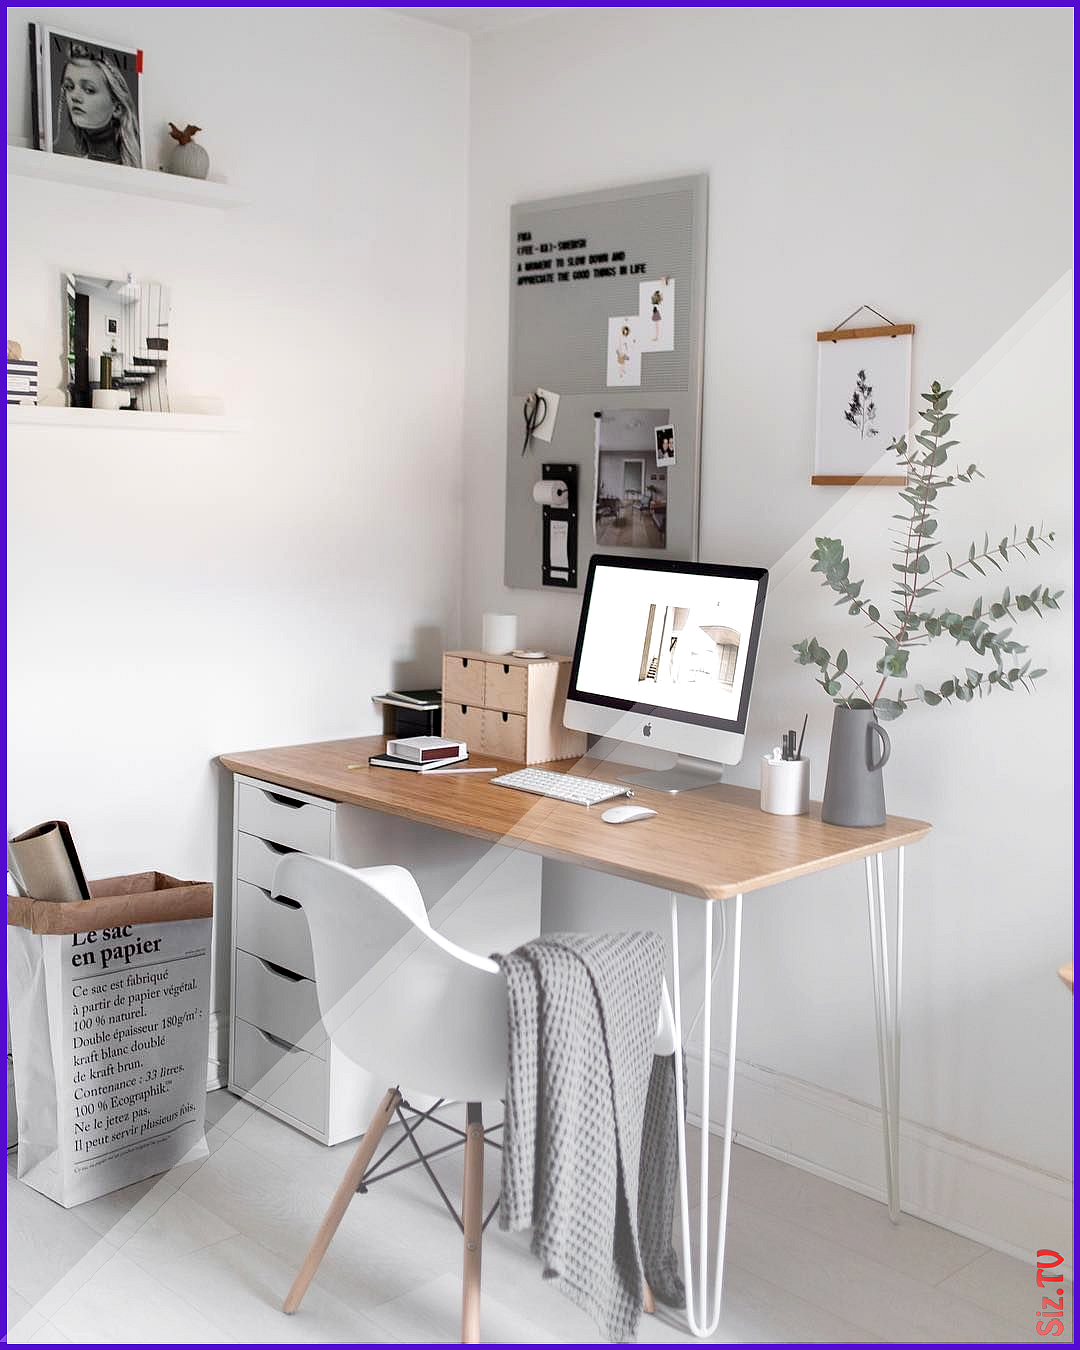 N Rdic Llar On Instagram Back To Work This Is What The Desk In The Study Looked Like 2 Days Ago Until I St Study Room Decor Home Office Design Minimalist Room